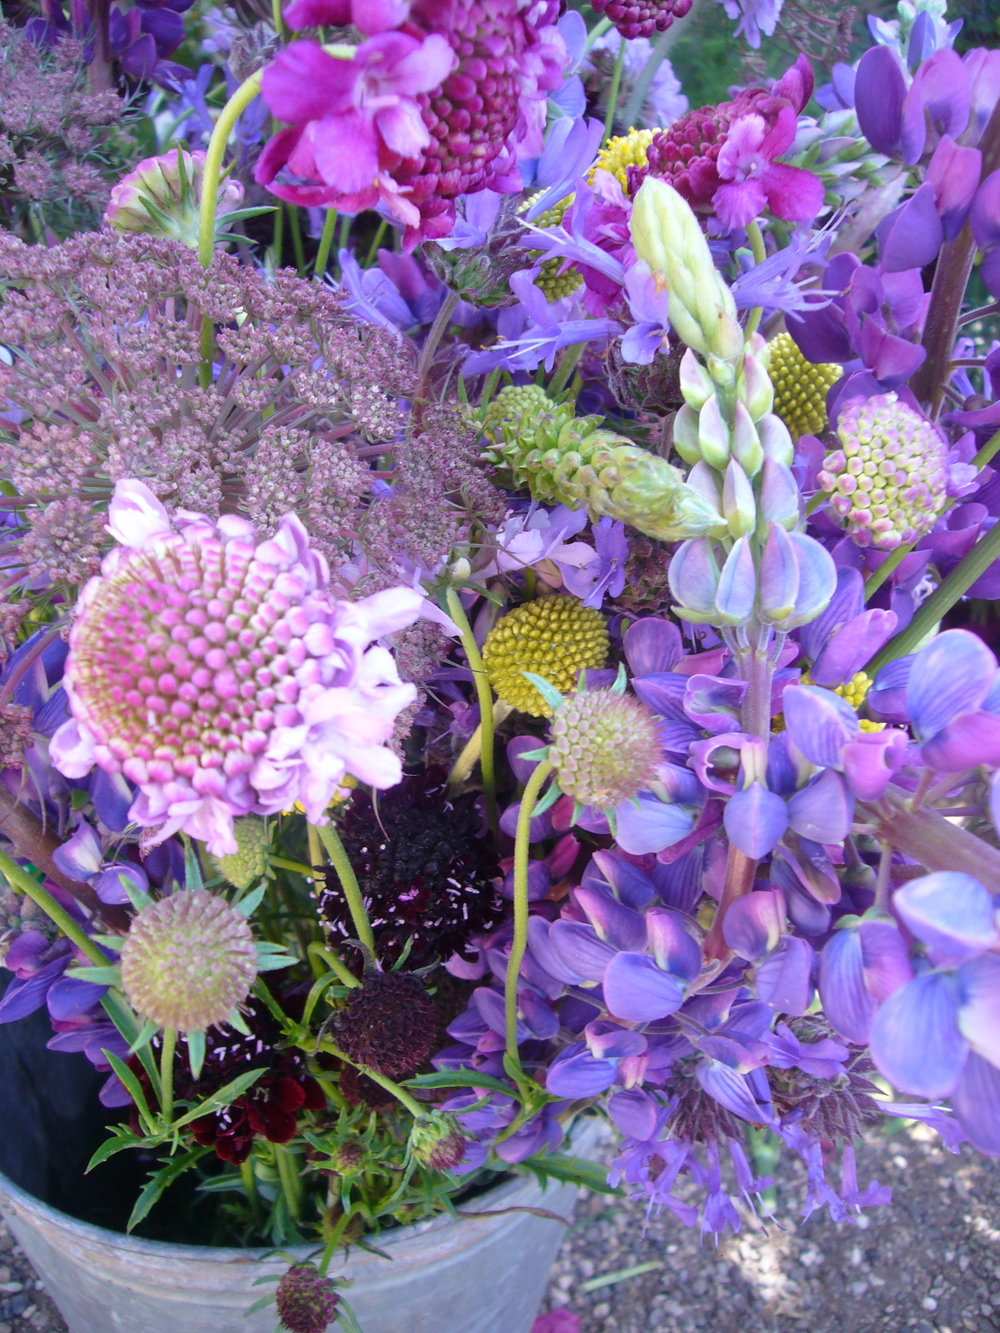 Lupin, Scabiosa, Black Dill, Billy Buttons